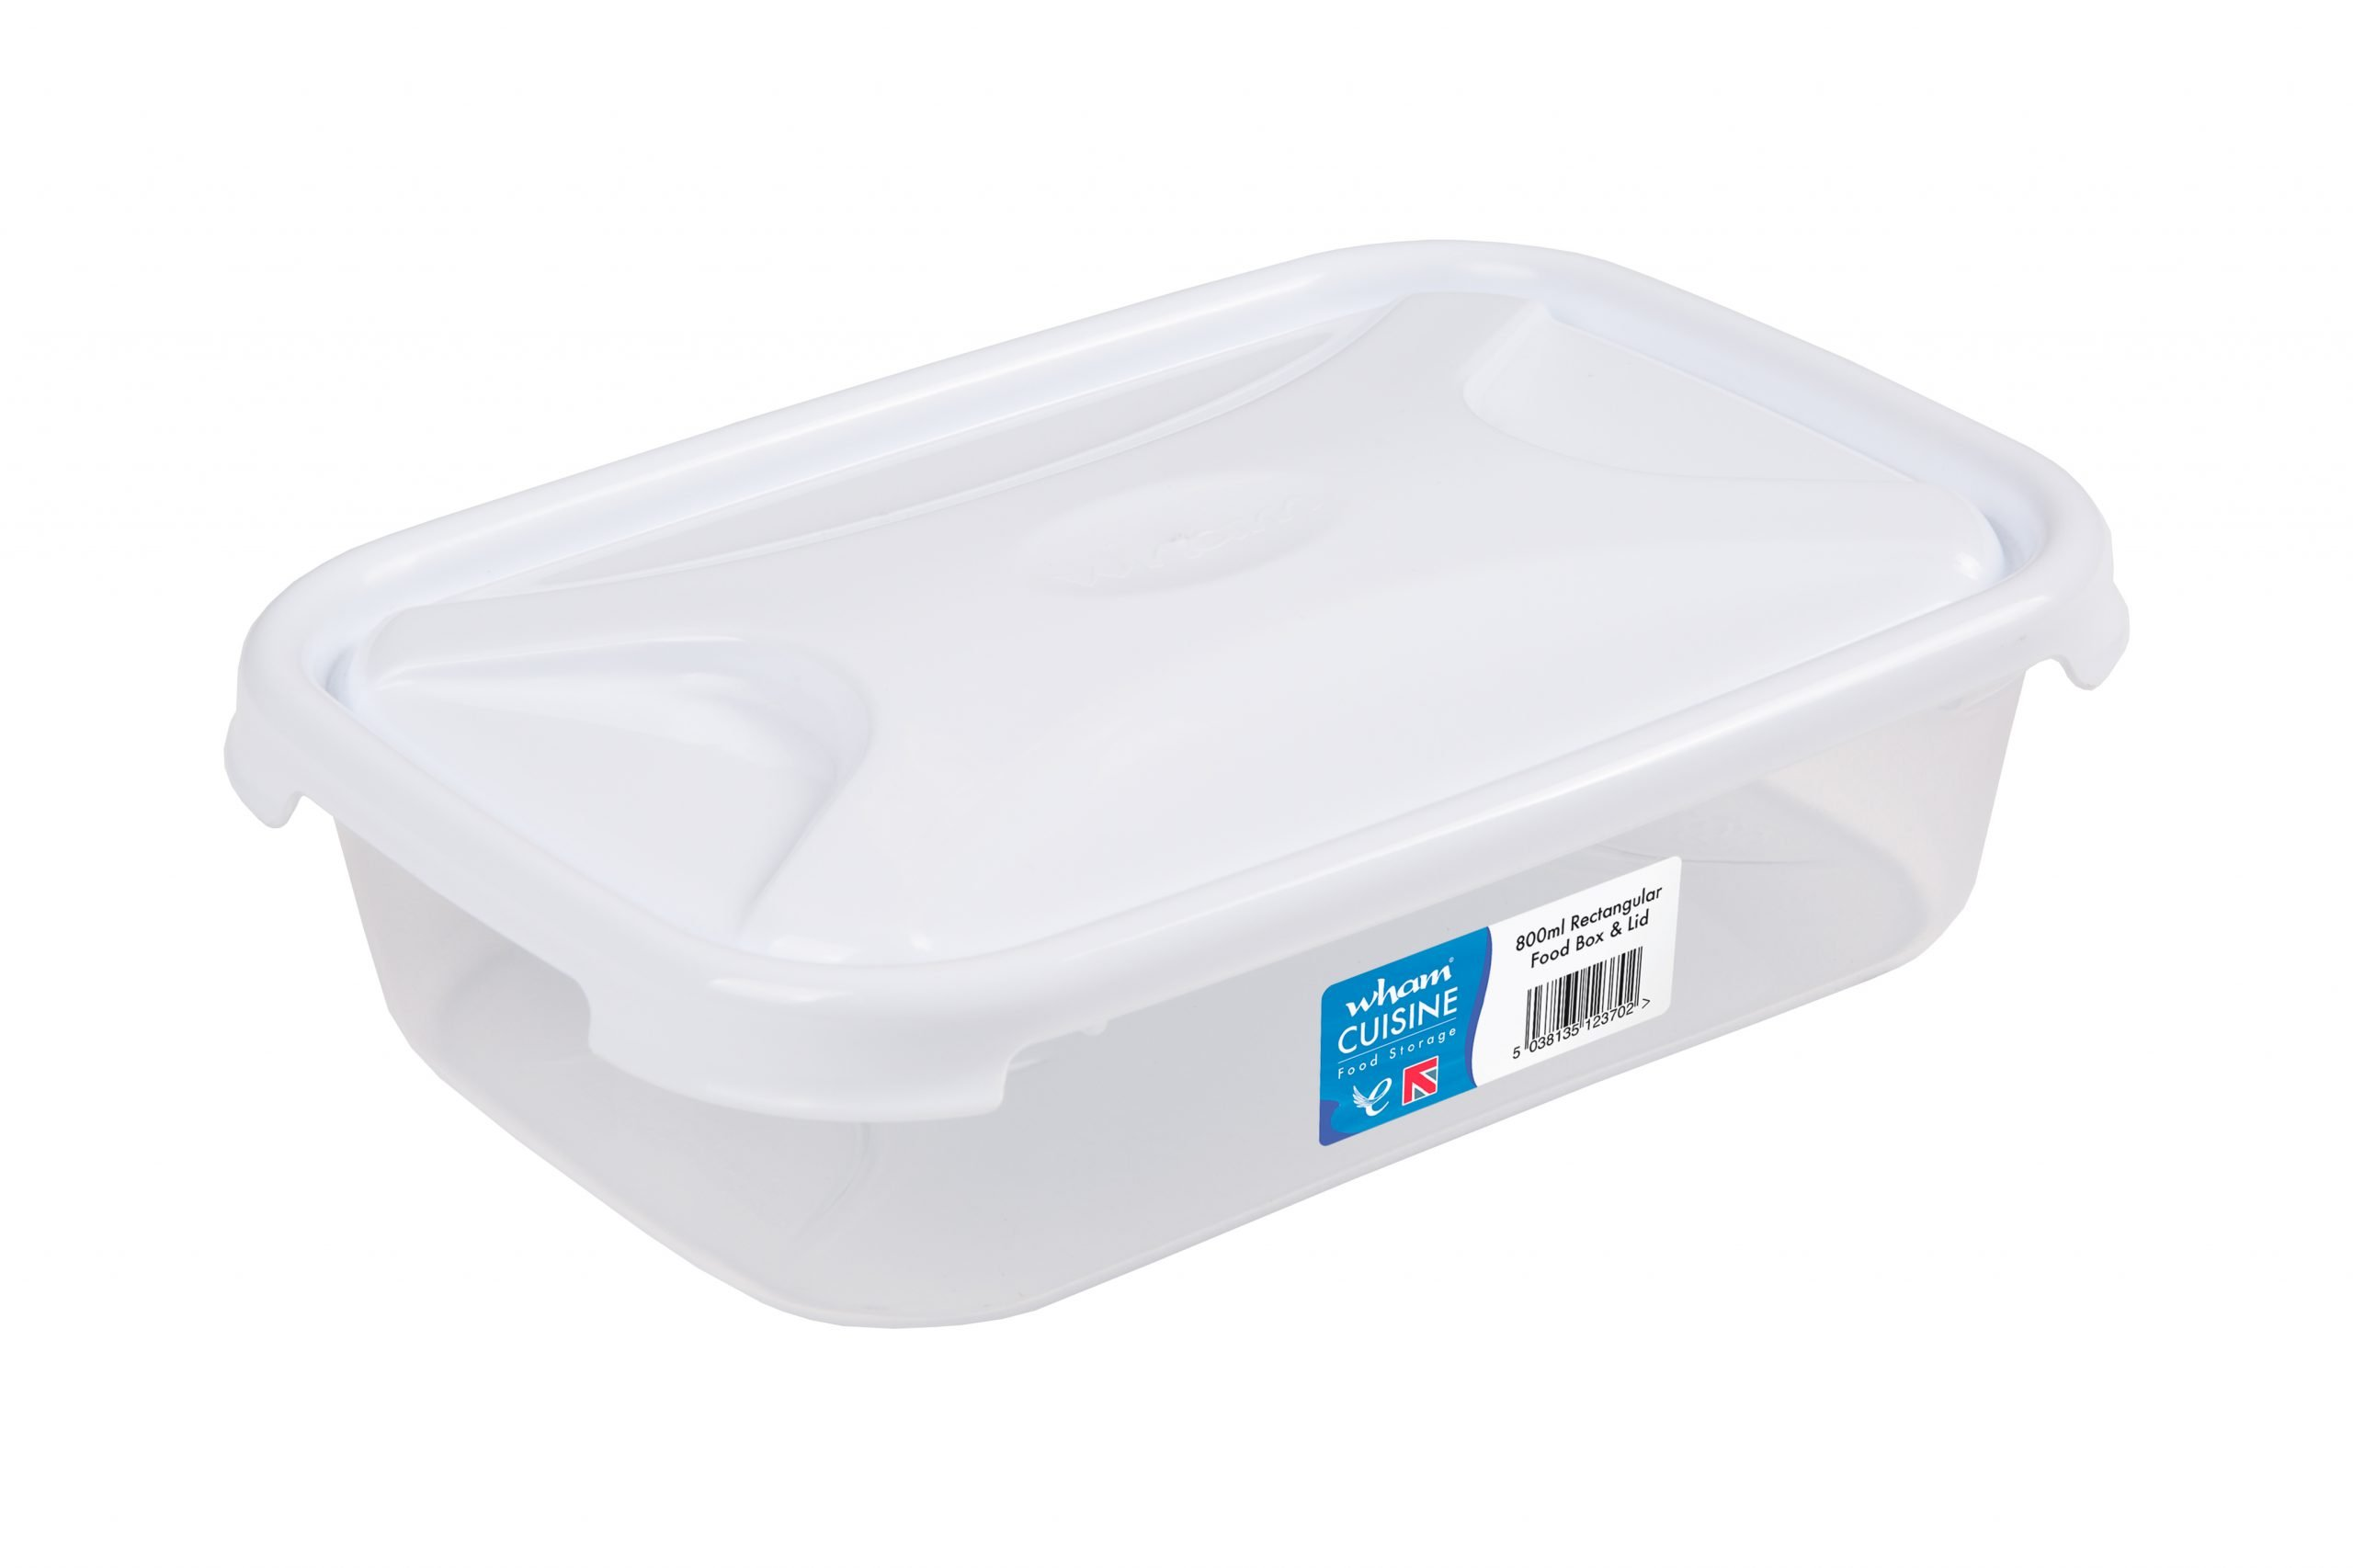 0.8Ltr Cuisine Rectangular Plastic Food Storage Container